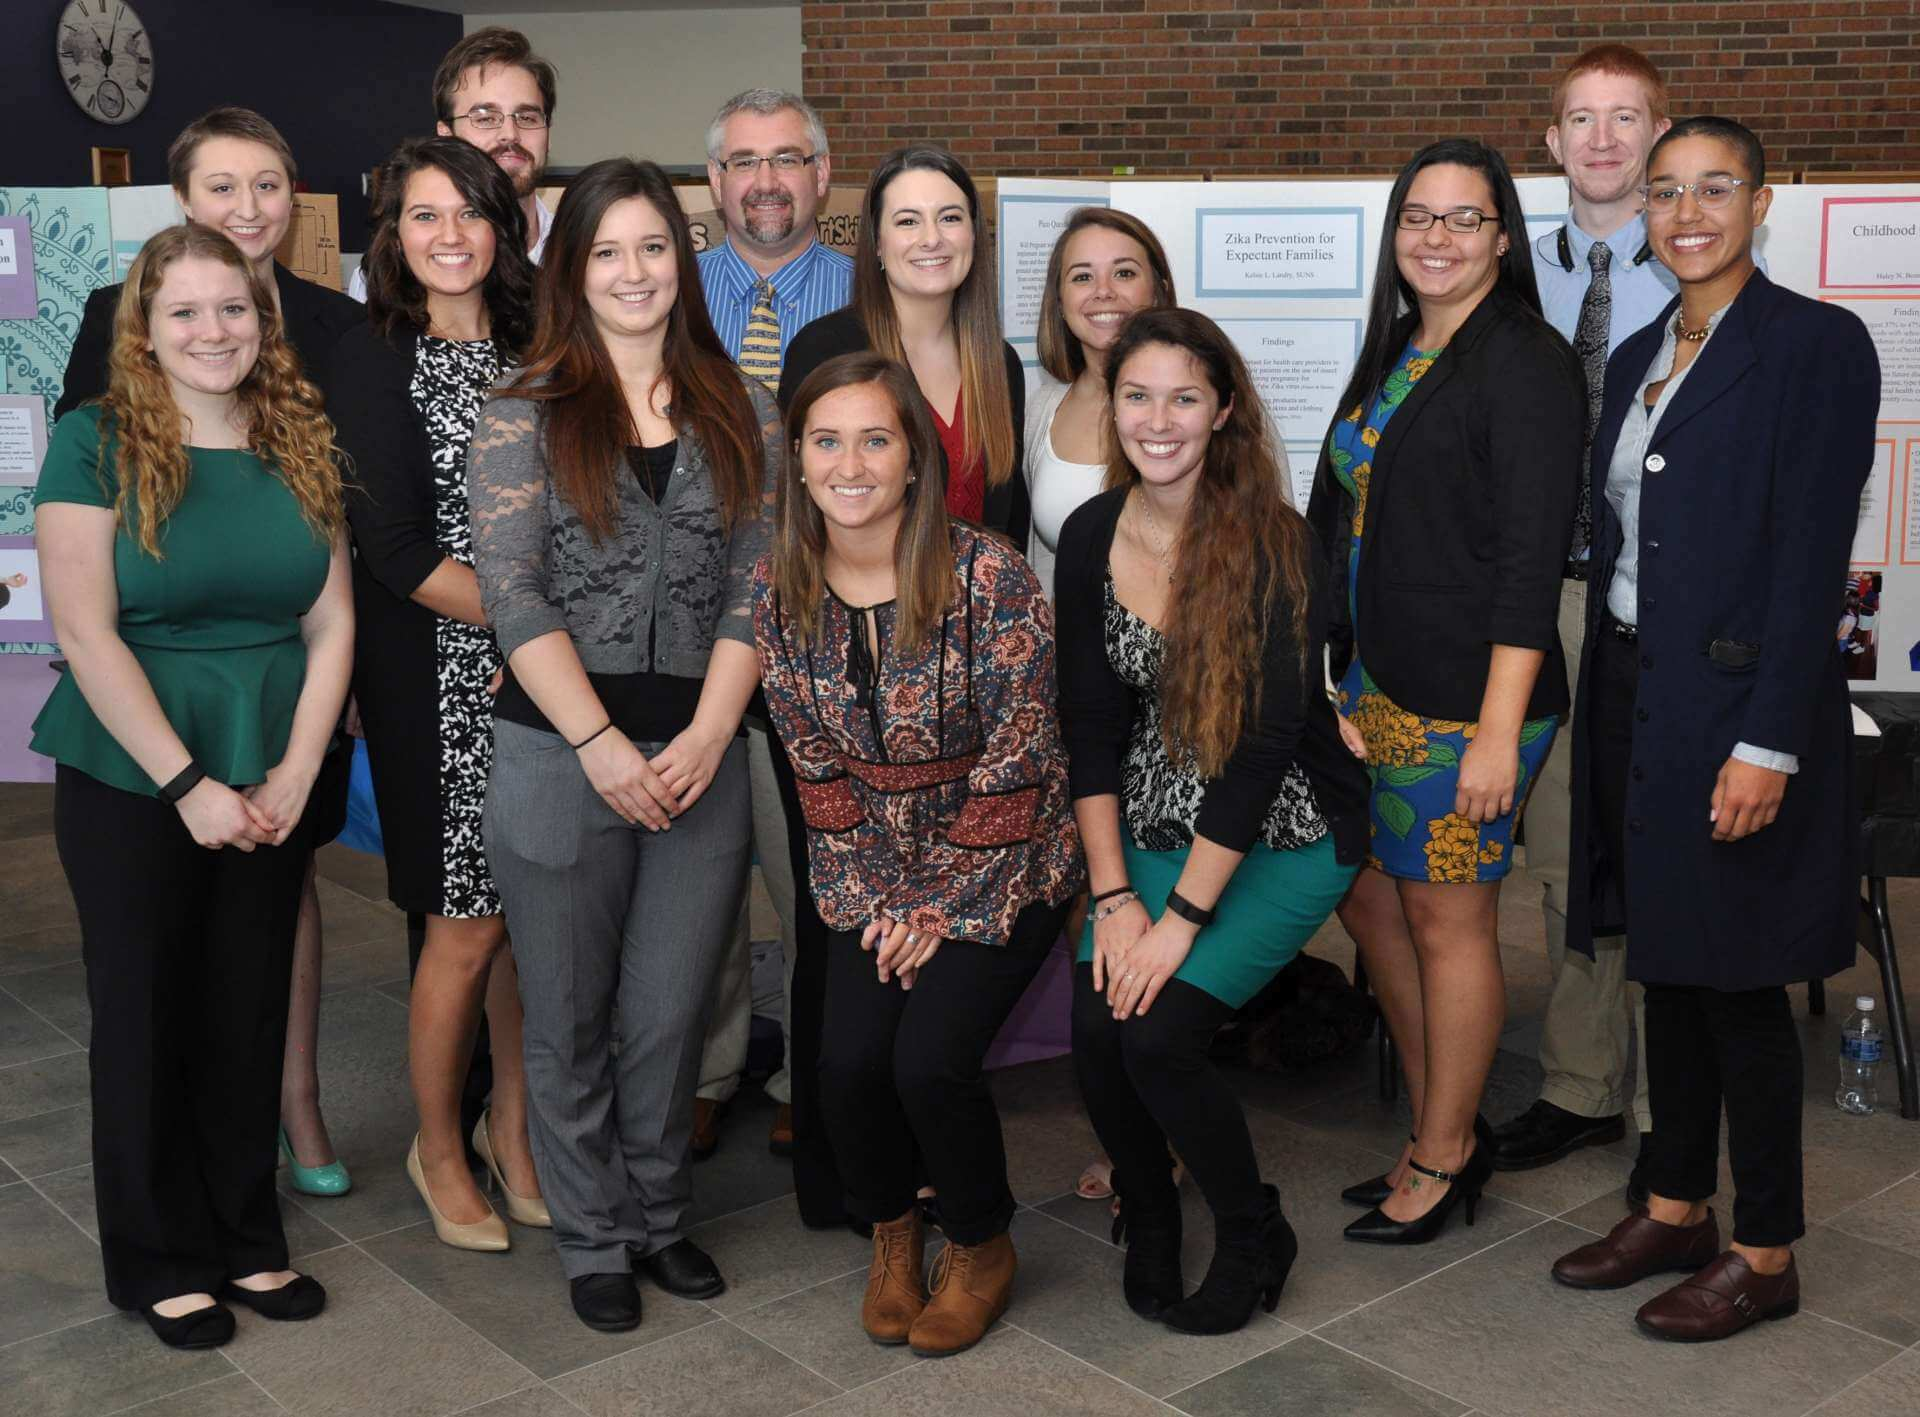 Students who created poster presentations for the annual Nursing Research Day include (l. to r.) Janae Hanes, Shannon Becker, Amanda Feagans, Henry Jones, Rachel DeBord, Jarrod Houser, Hannah Russo, Renae Pascone, Savannah Shores, Caitlin O'Connor, Sally Rodriguez, Kevin Morgan, and Francesca Inman.